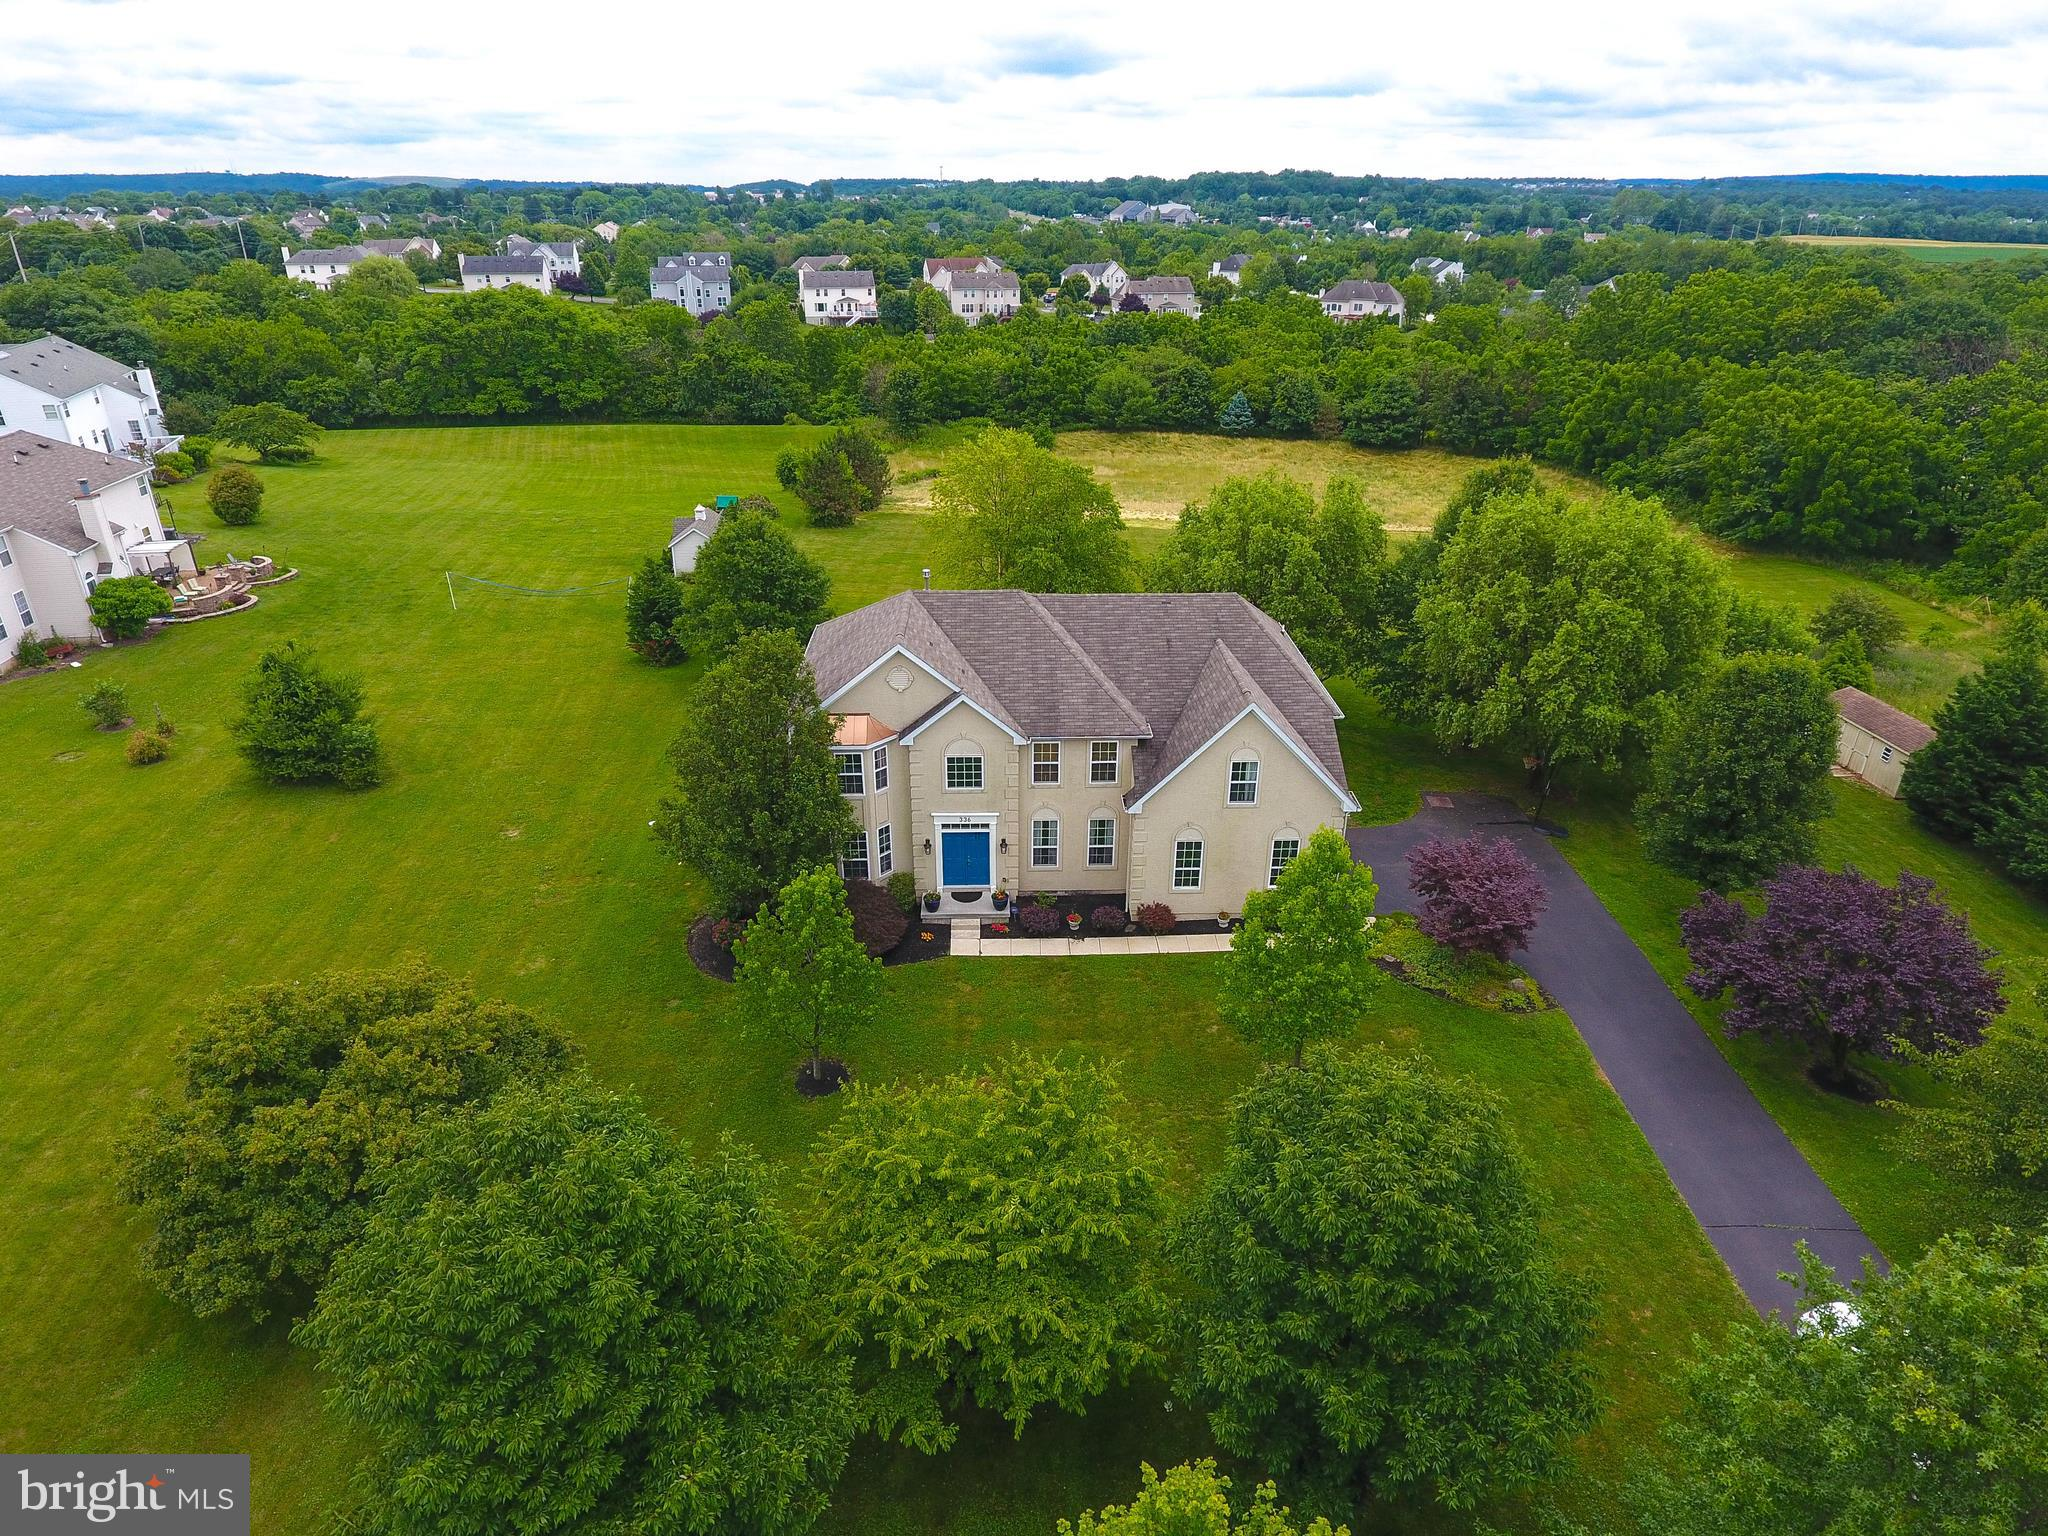 336 OLD STATE ROAD, ROYERSFORD, PA 19468